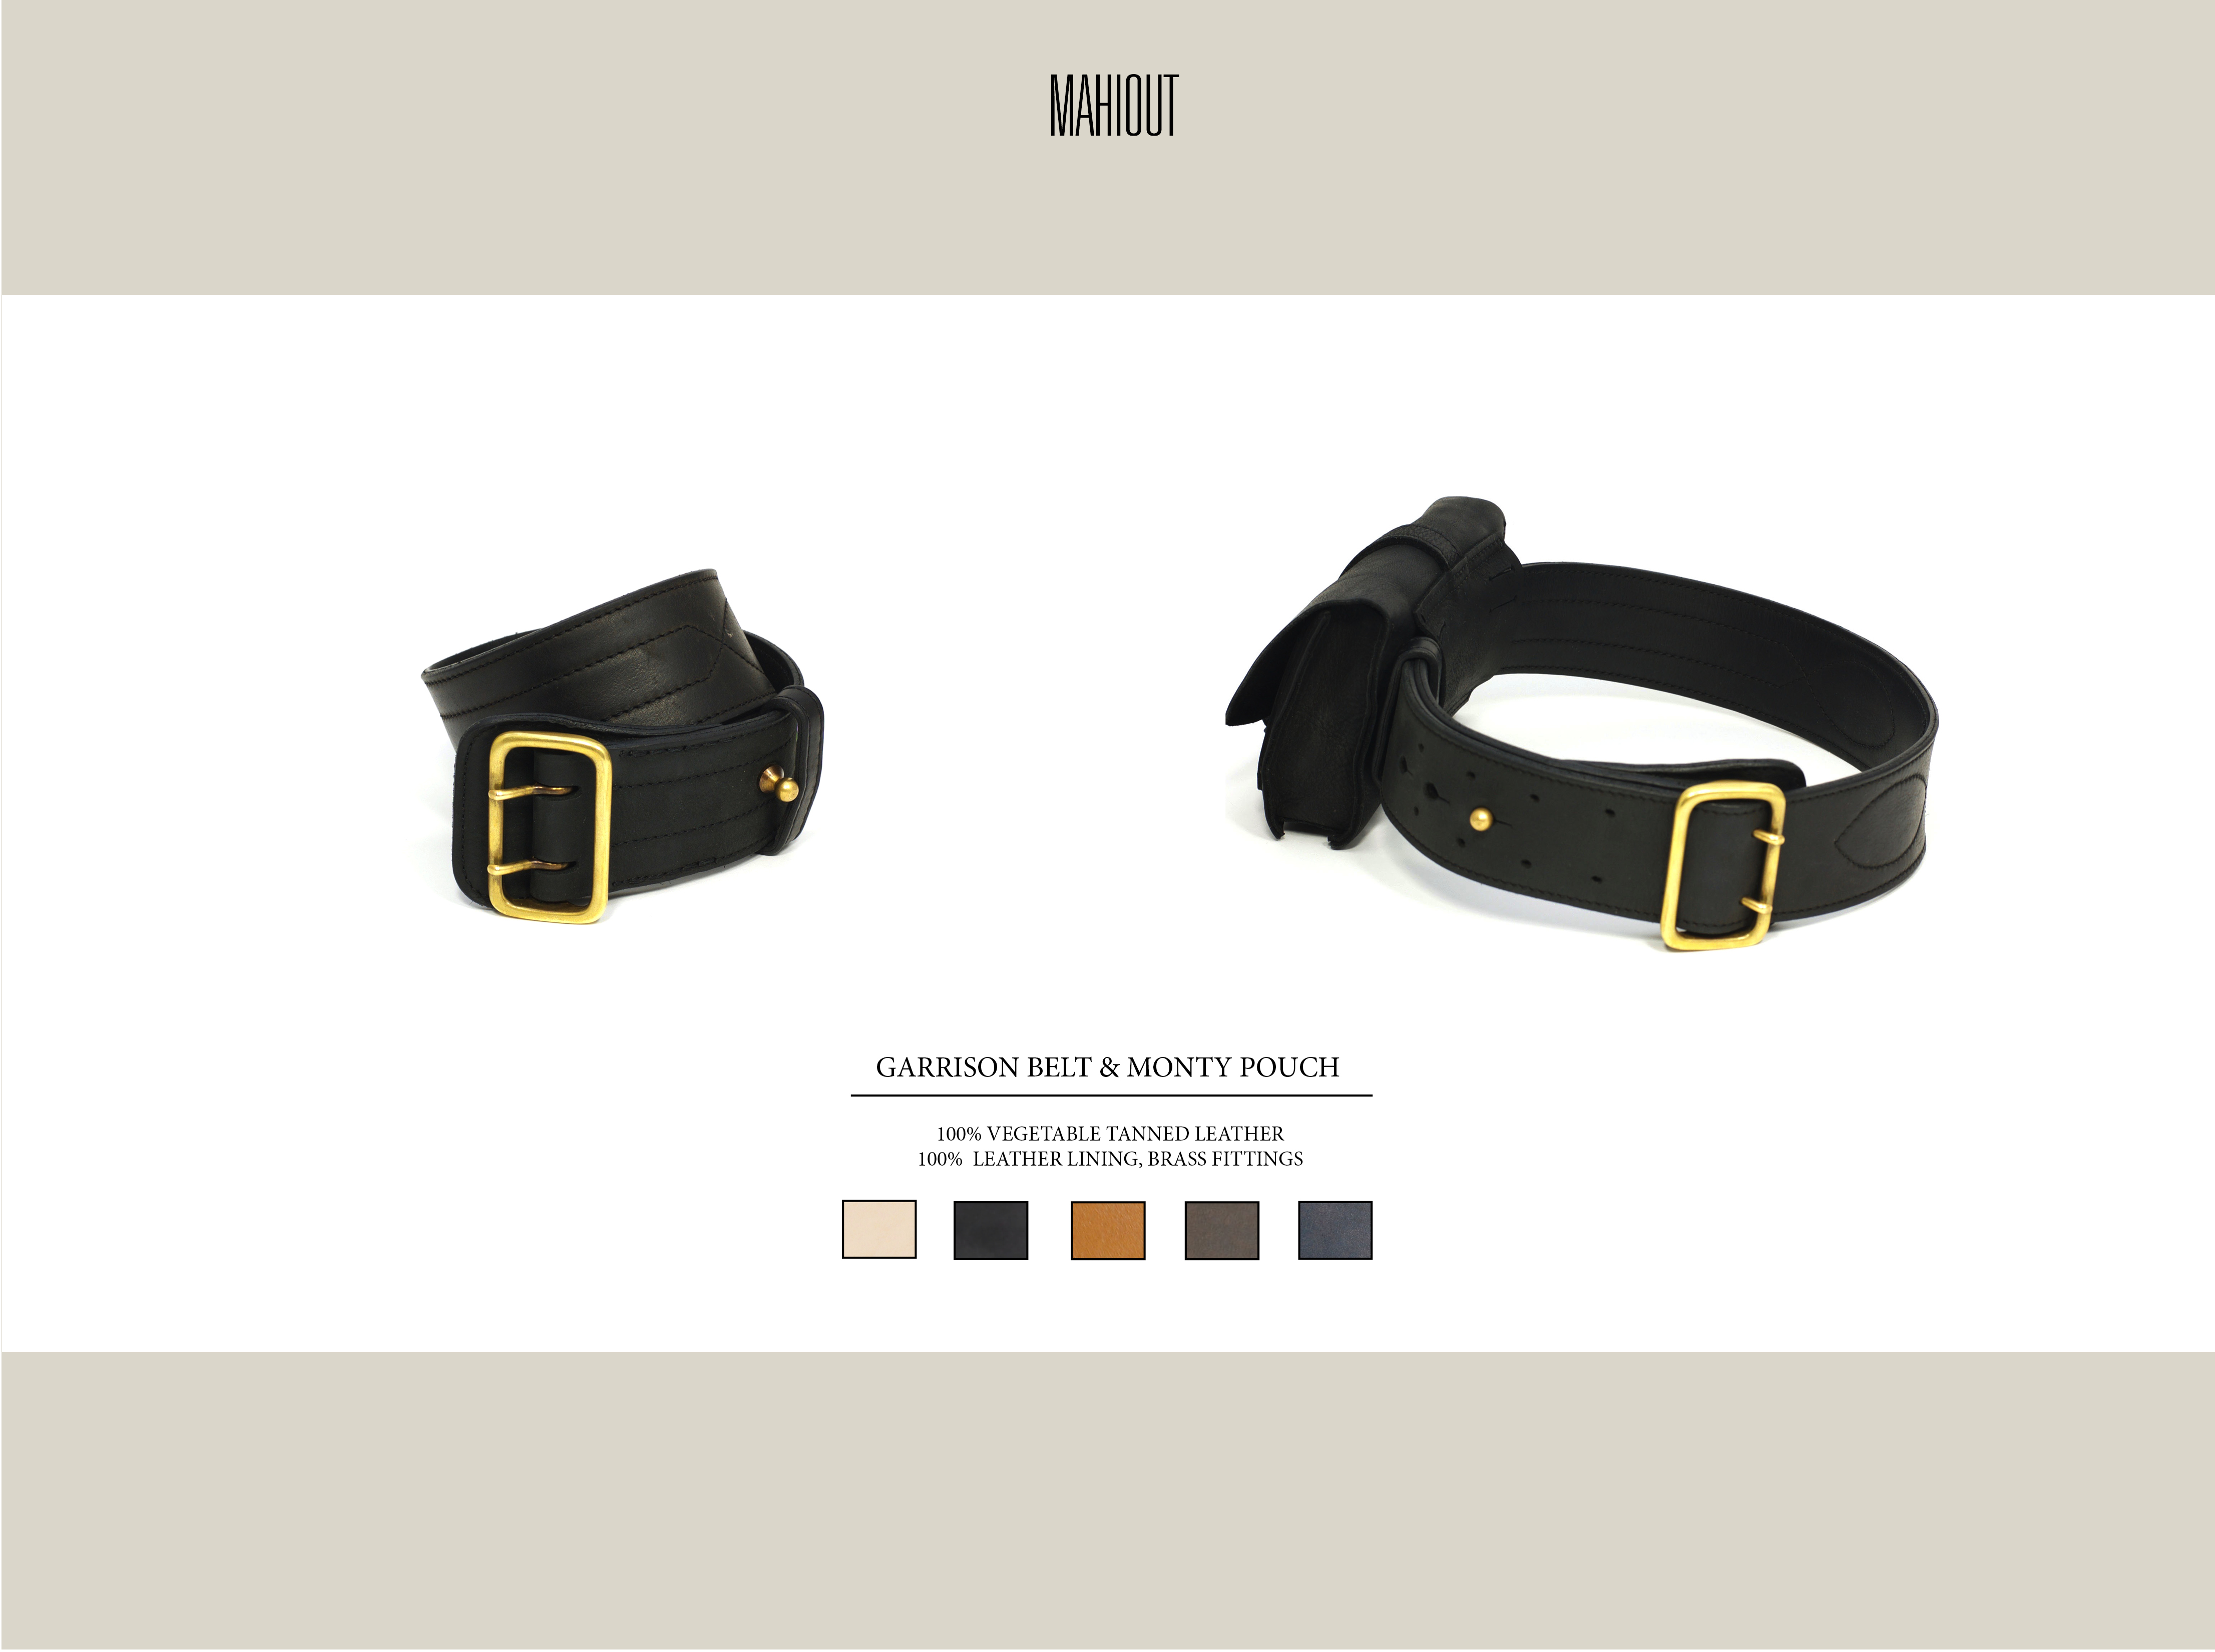 mahiout garrison belt and monty pouch in leather belt bag